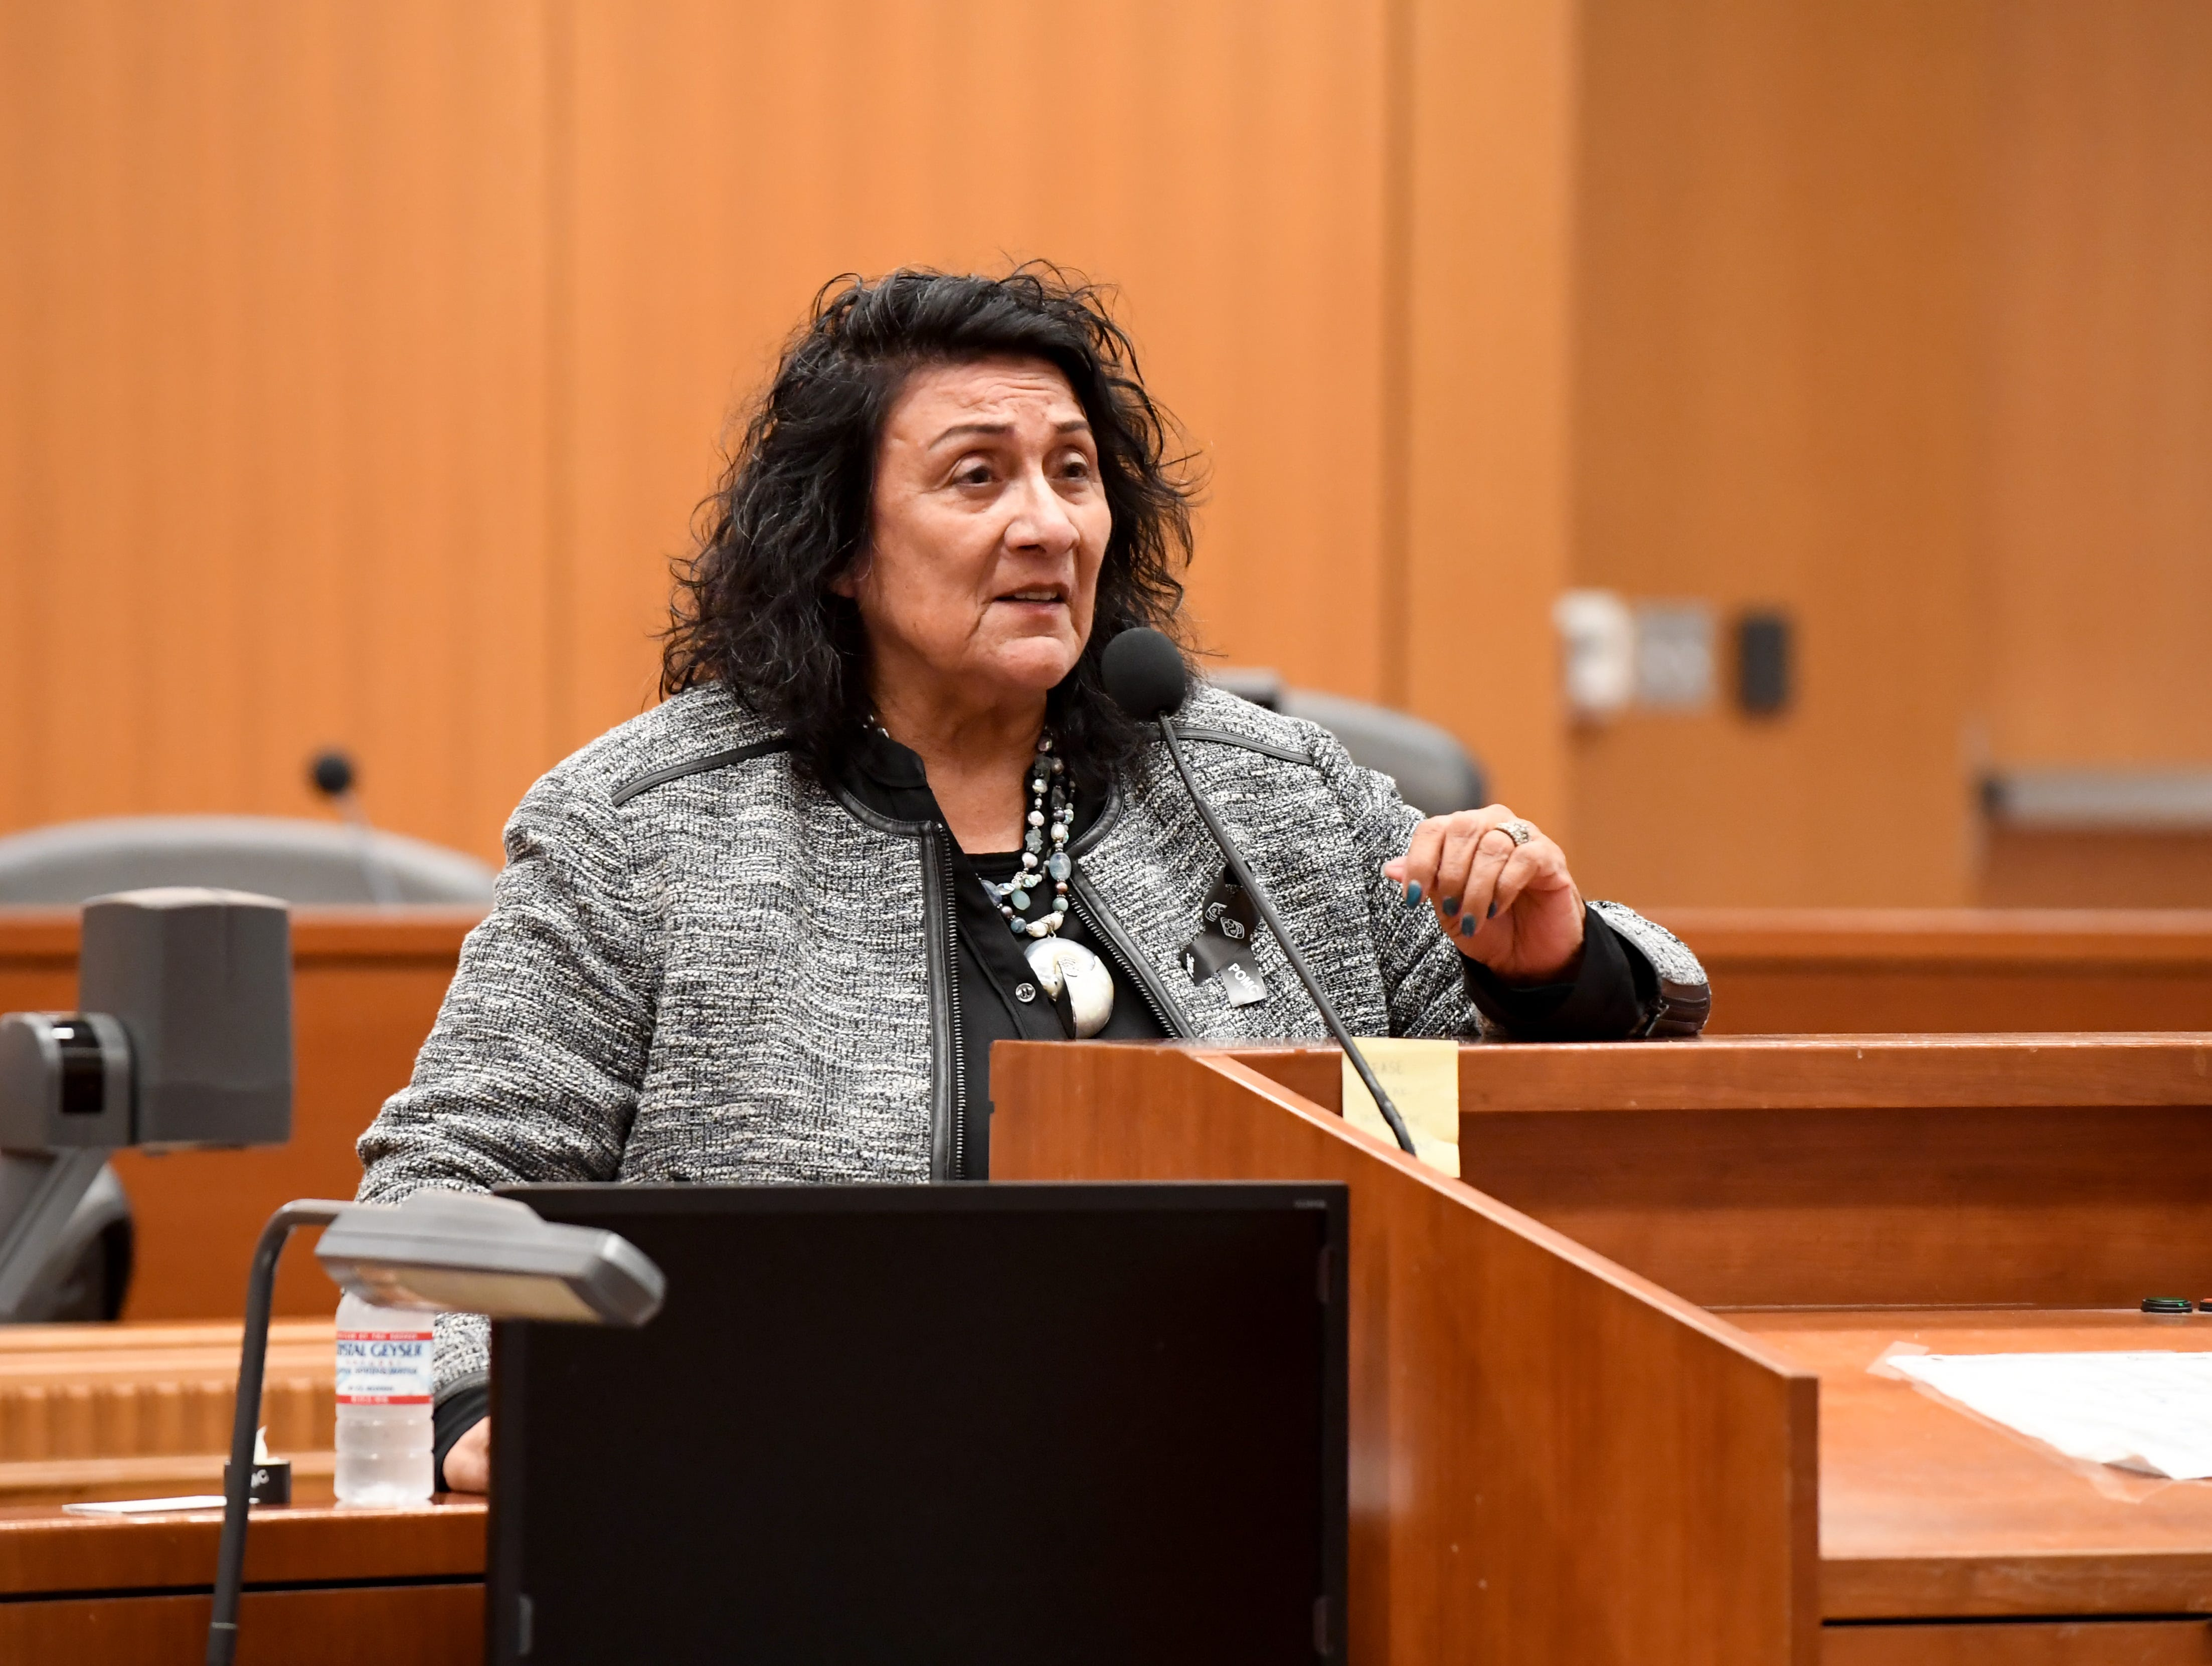 Angie Ortega, president of the local chapter for Parents of Murdered Children, Inc., addresses the crowded during the National Day of Remembrance for Murder Victims Thursday. Her daughter Lorraine was killed in 1993.